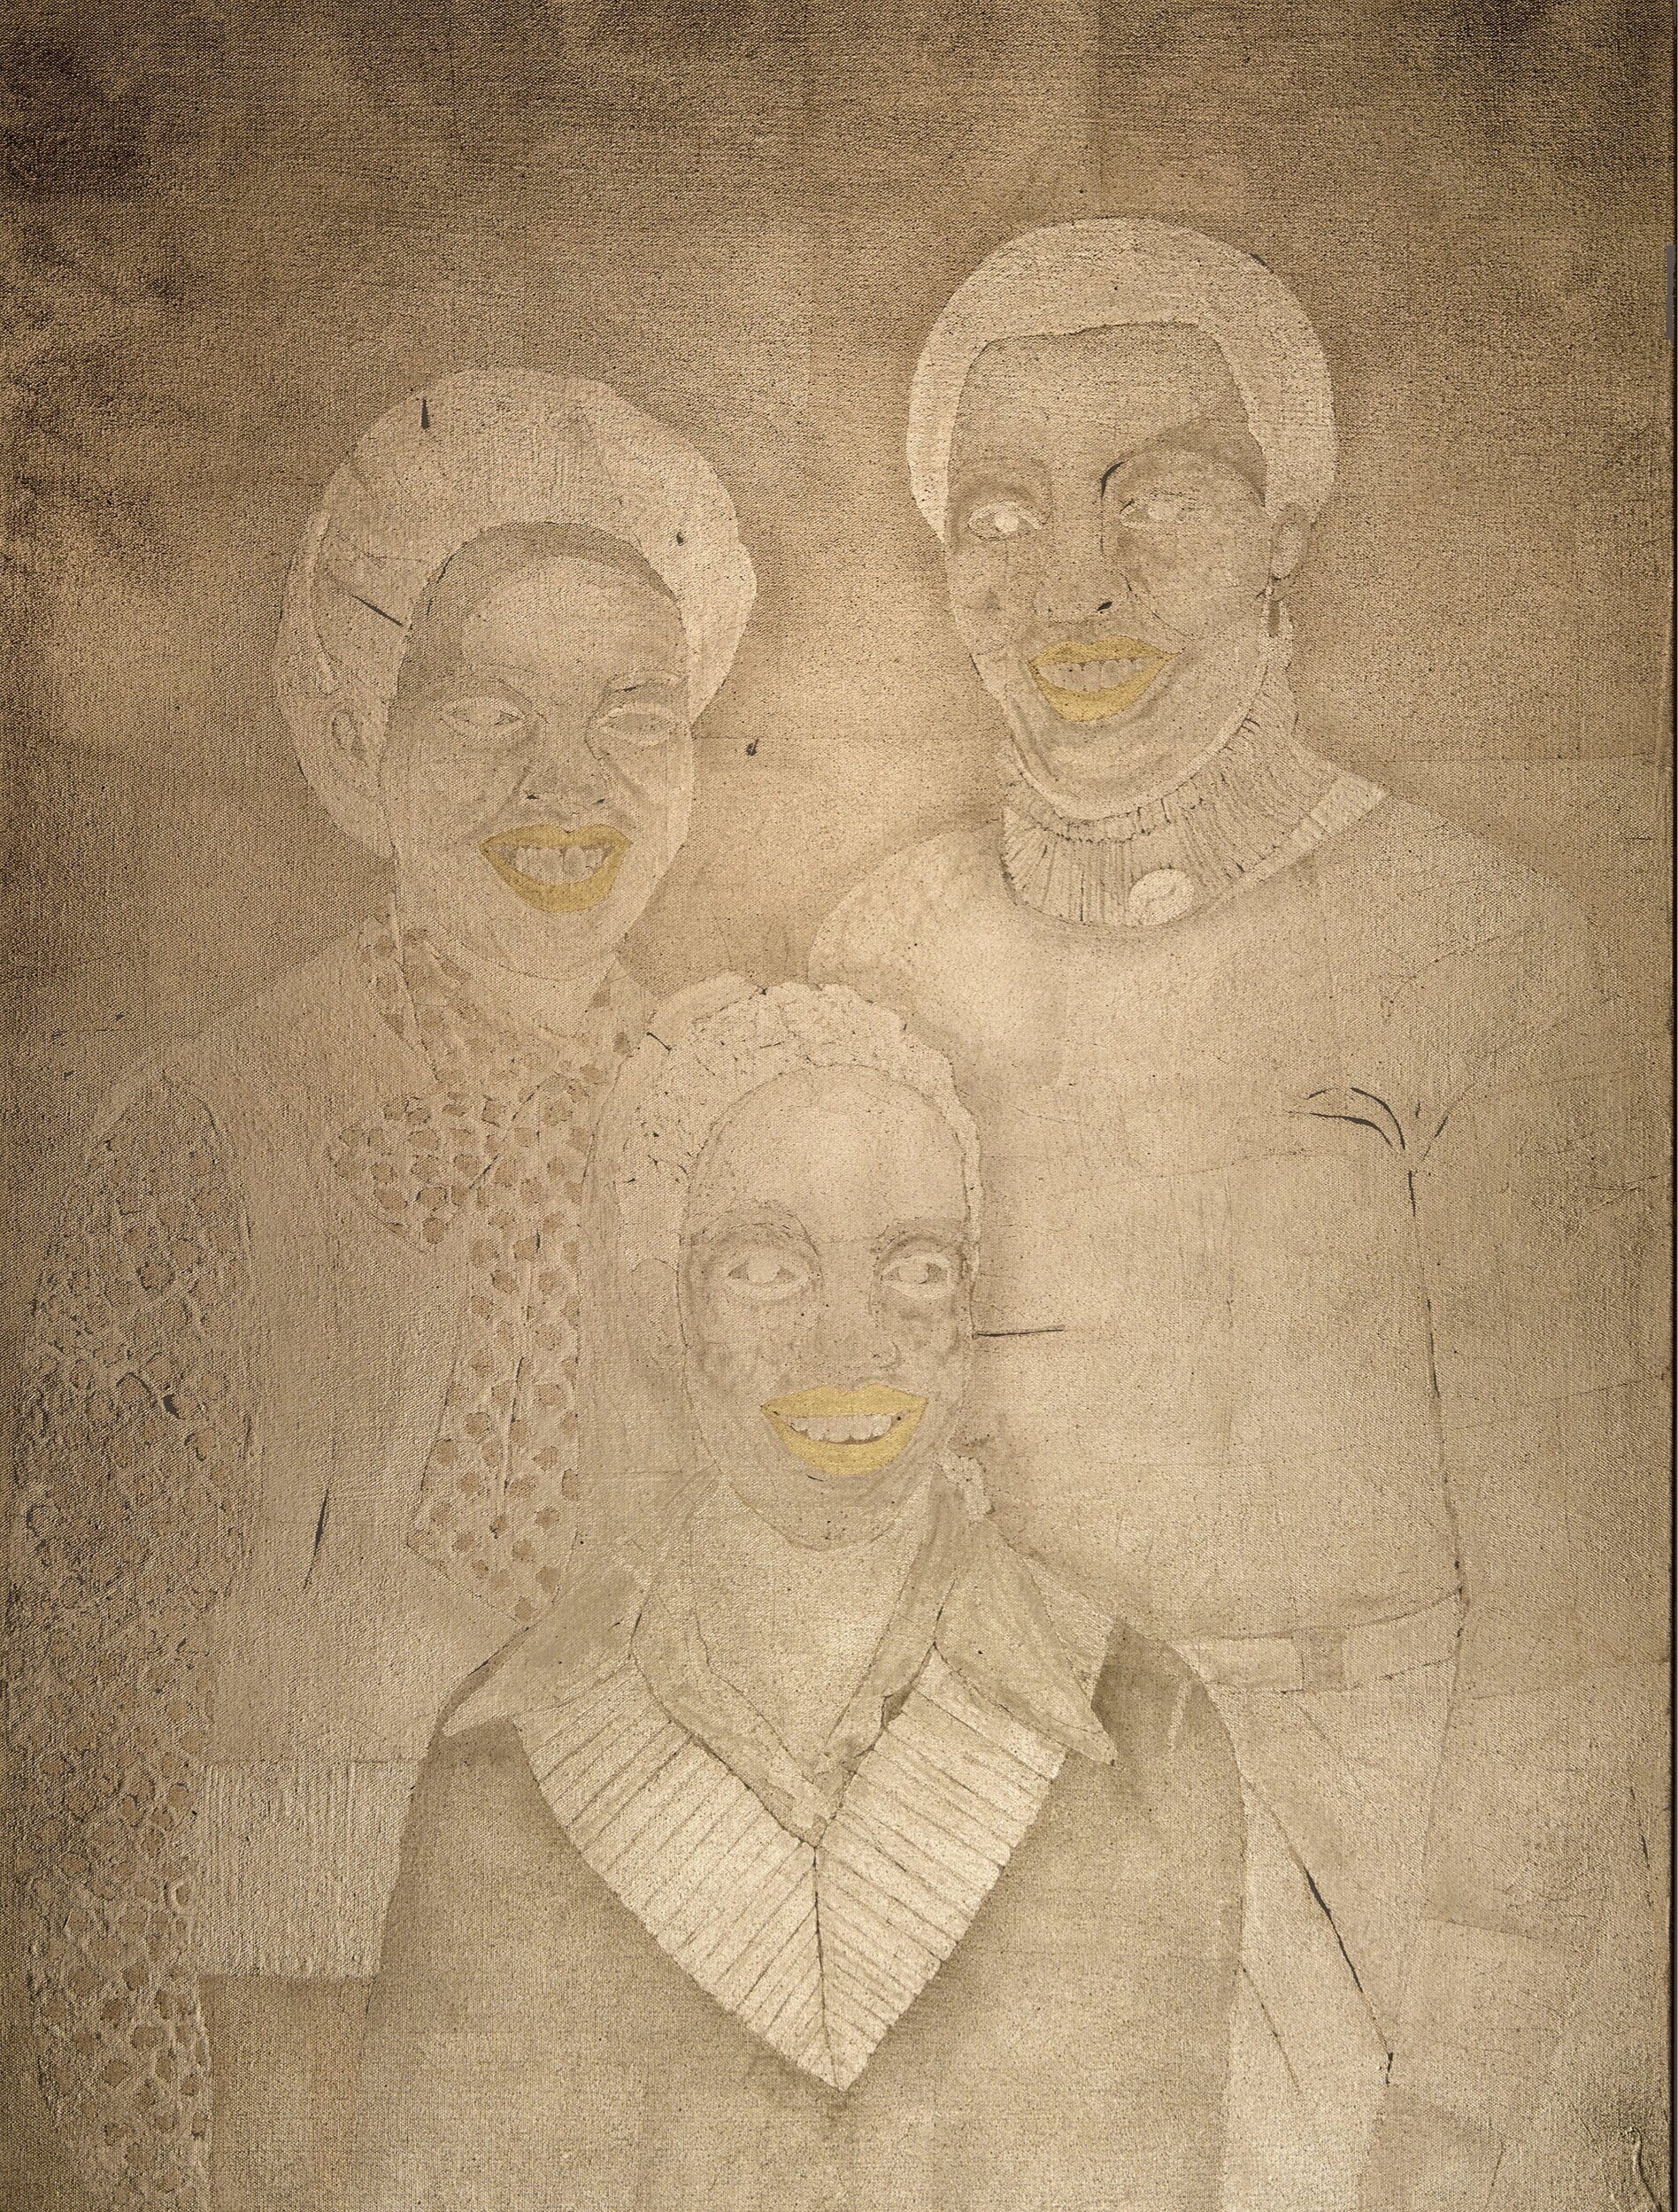 Untitled (Family Portrait),  2018, 40 x 30 inches, 22 karat and composition gold leaf on canvas